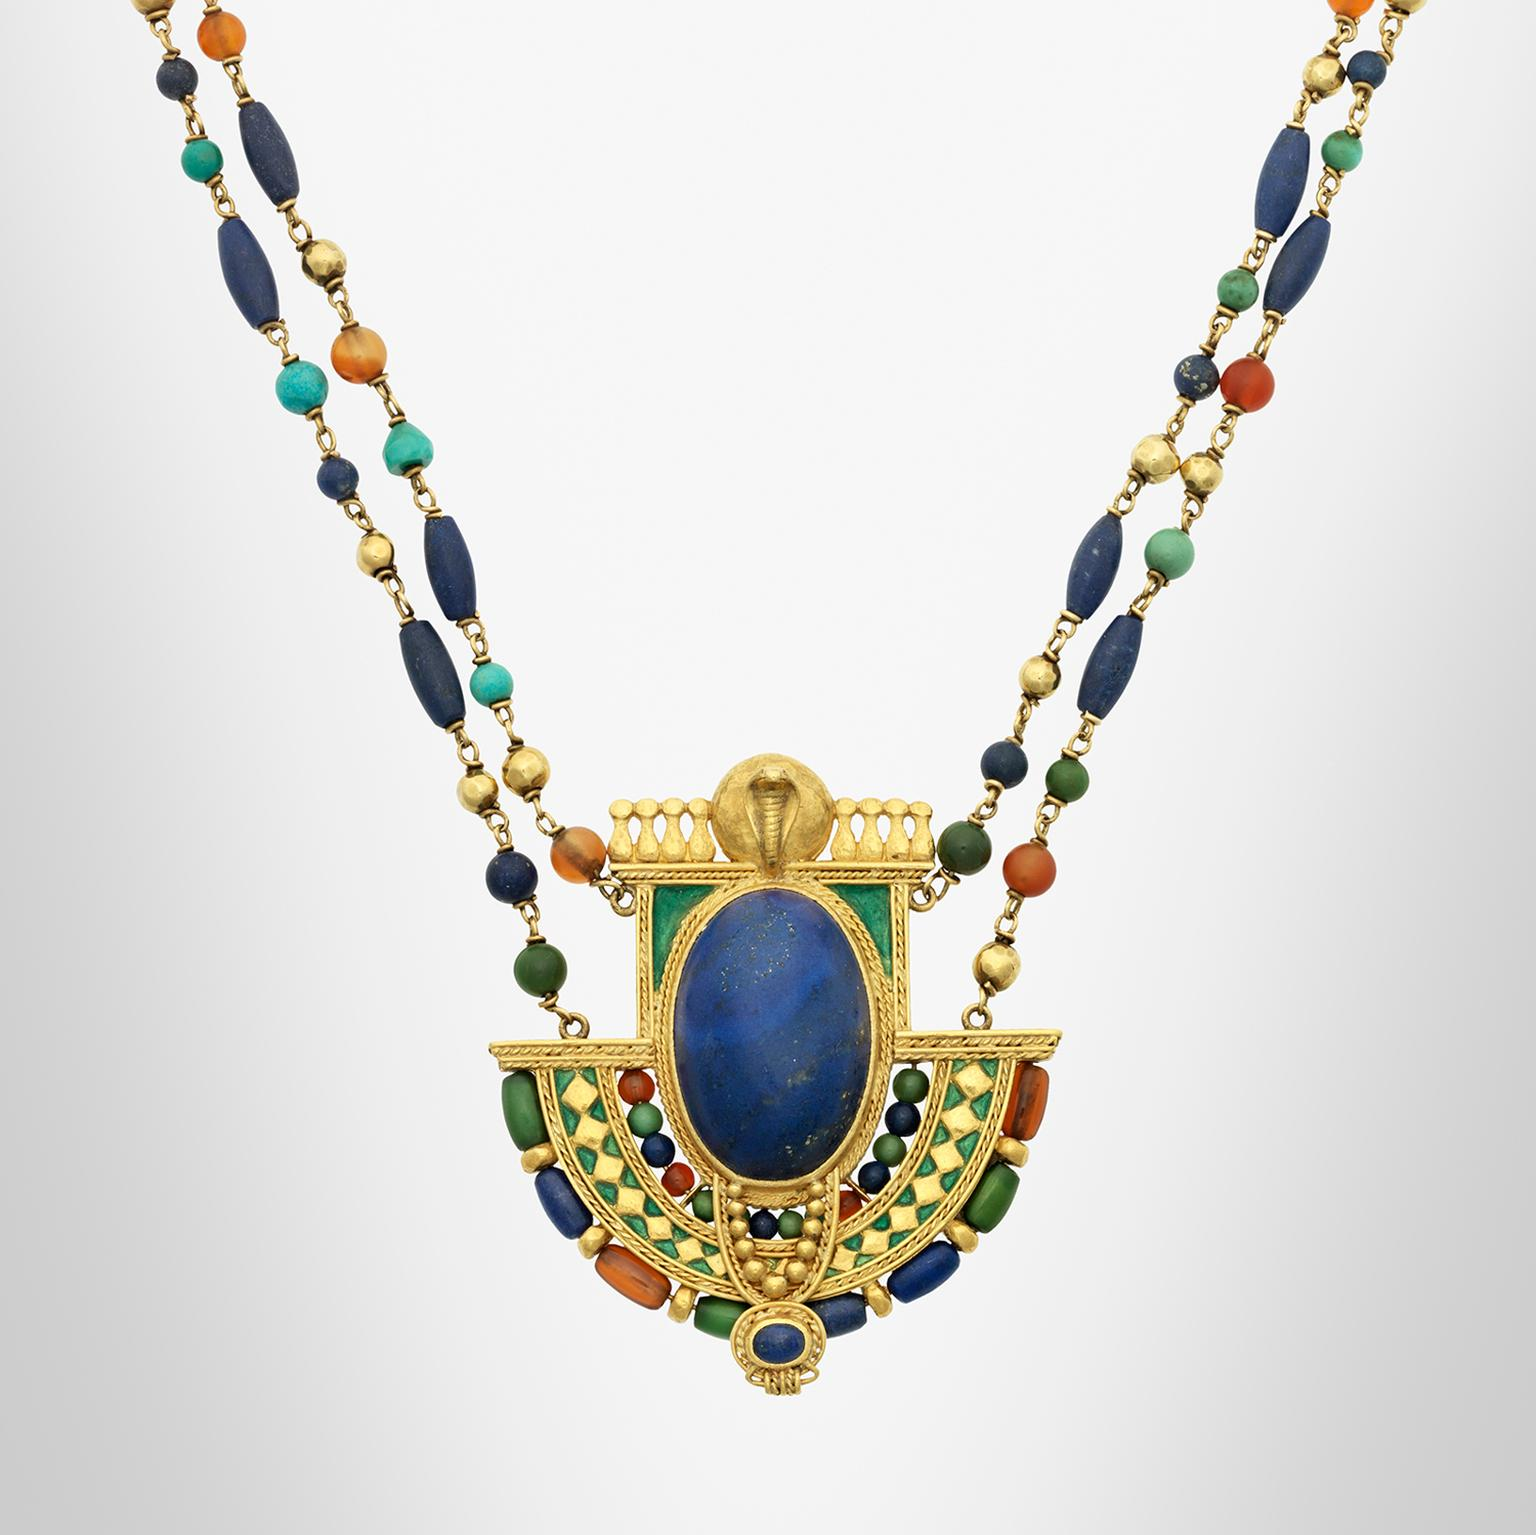 Egyptian revival necklace from 1913, designed by Louis Comfort Tiffany